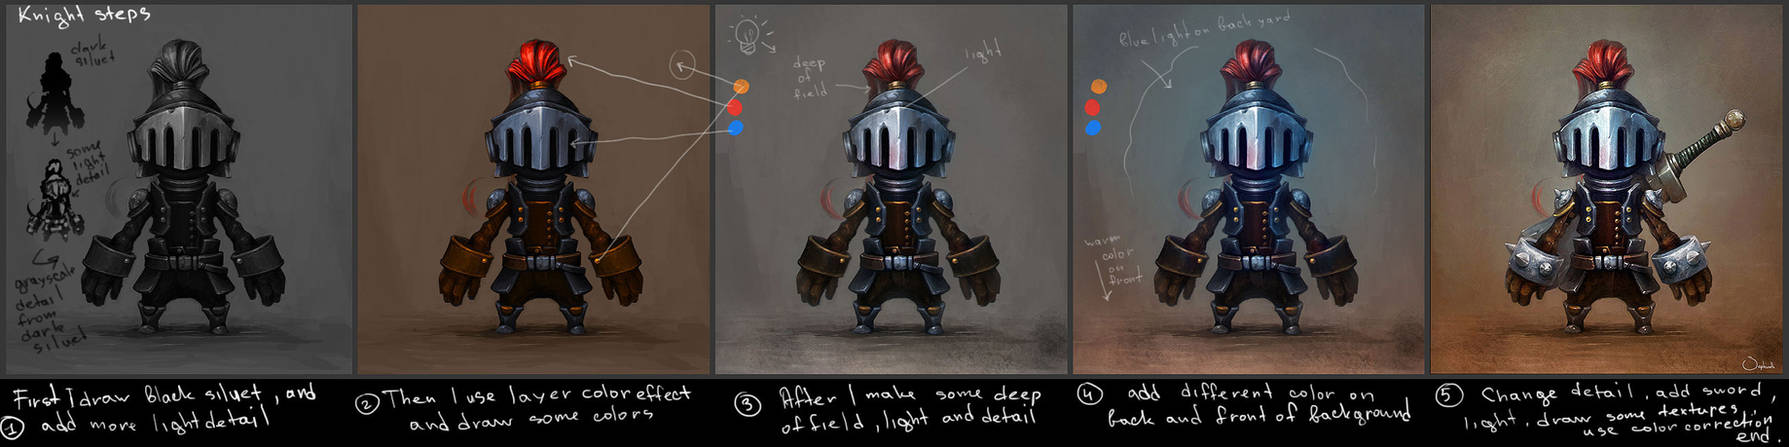 Knight Tutorial